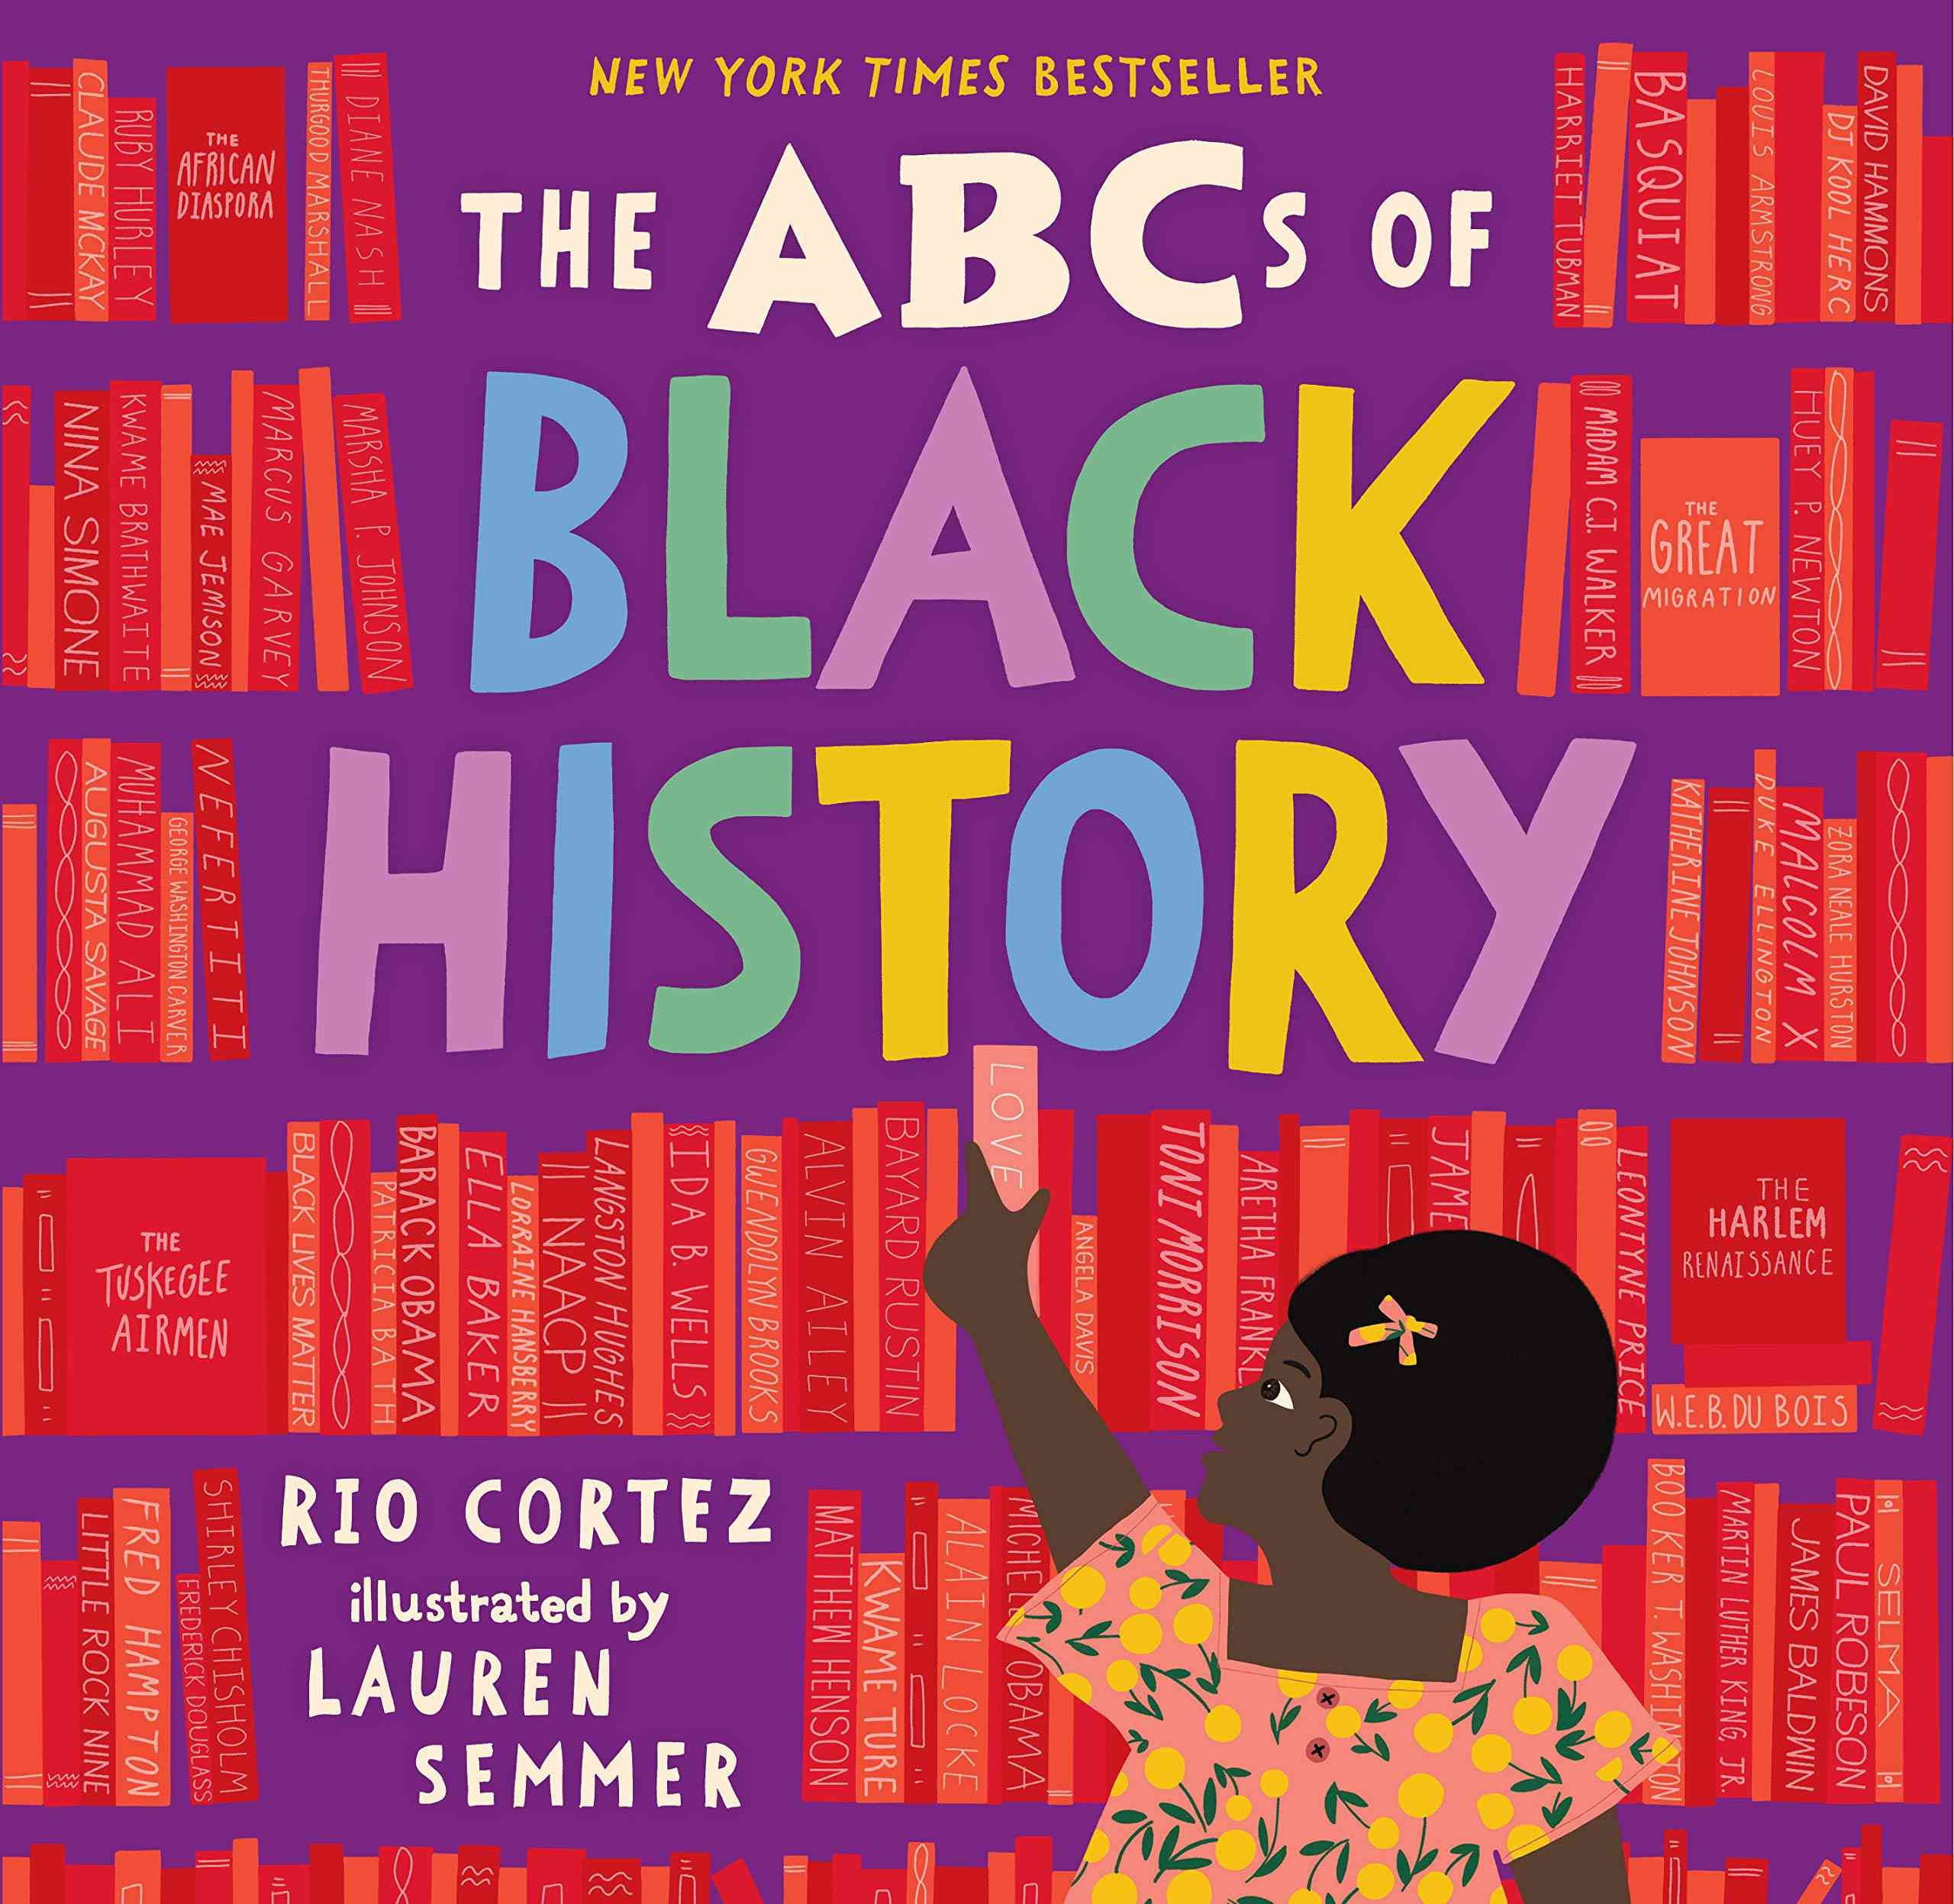 ABCs of Black History by Rio Cortez